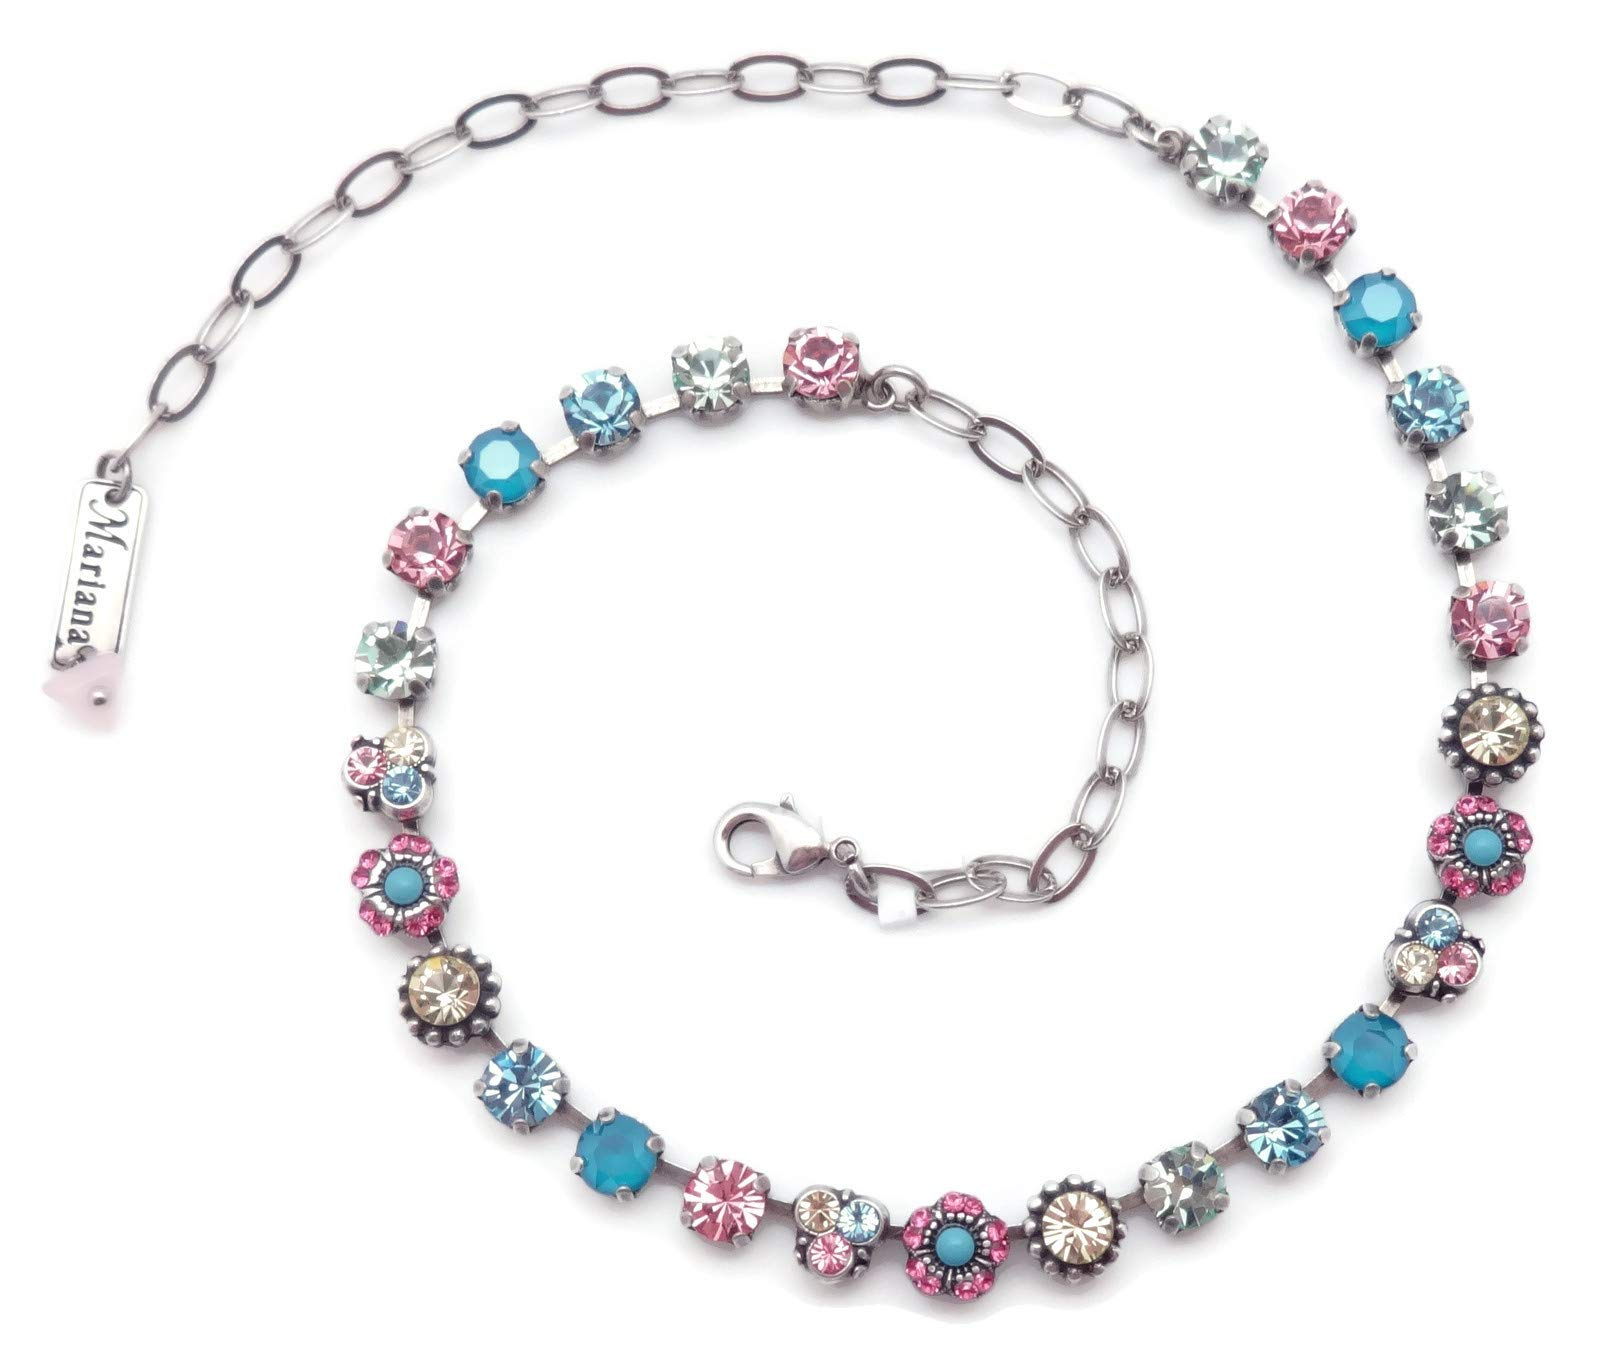 Mariana Spring Flowers Swarovski Crystal Silvertone Necklace Blue Pink Yellow Green Mix Mosaic 125 by Mariana (Image #3)